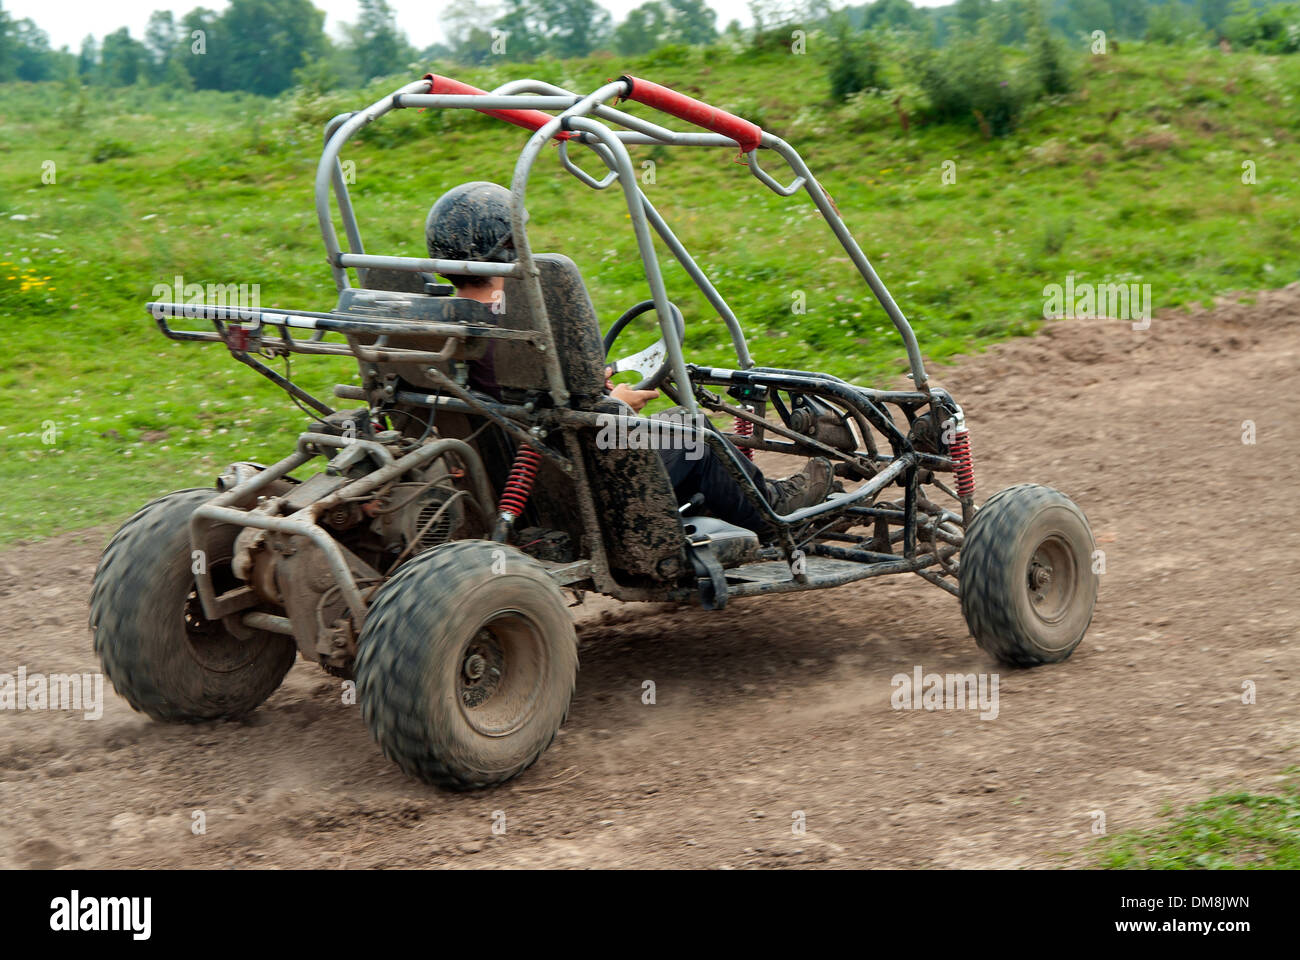 Buggy, all terrain vehicle, Canada - Stock Image